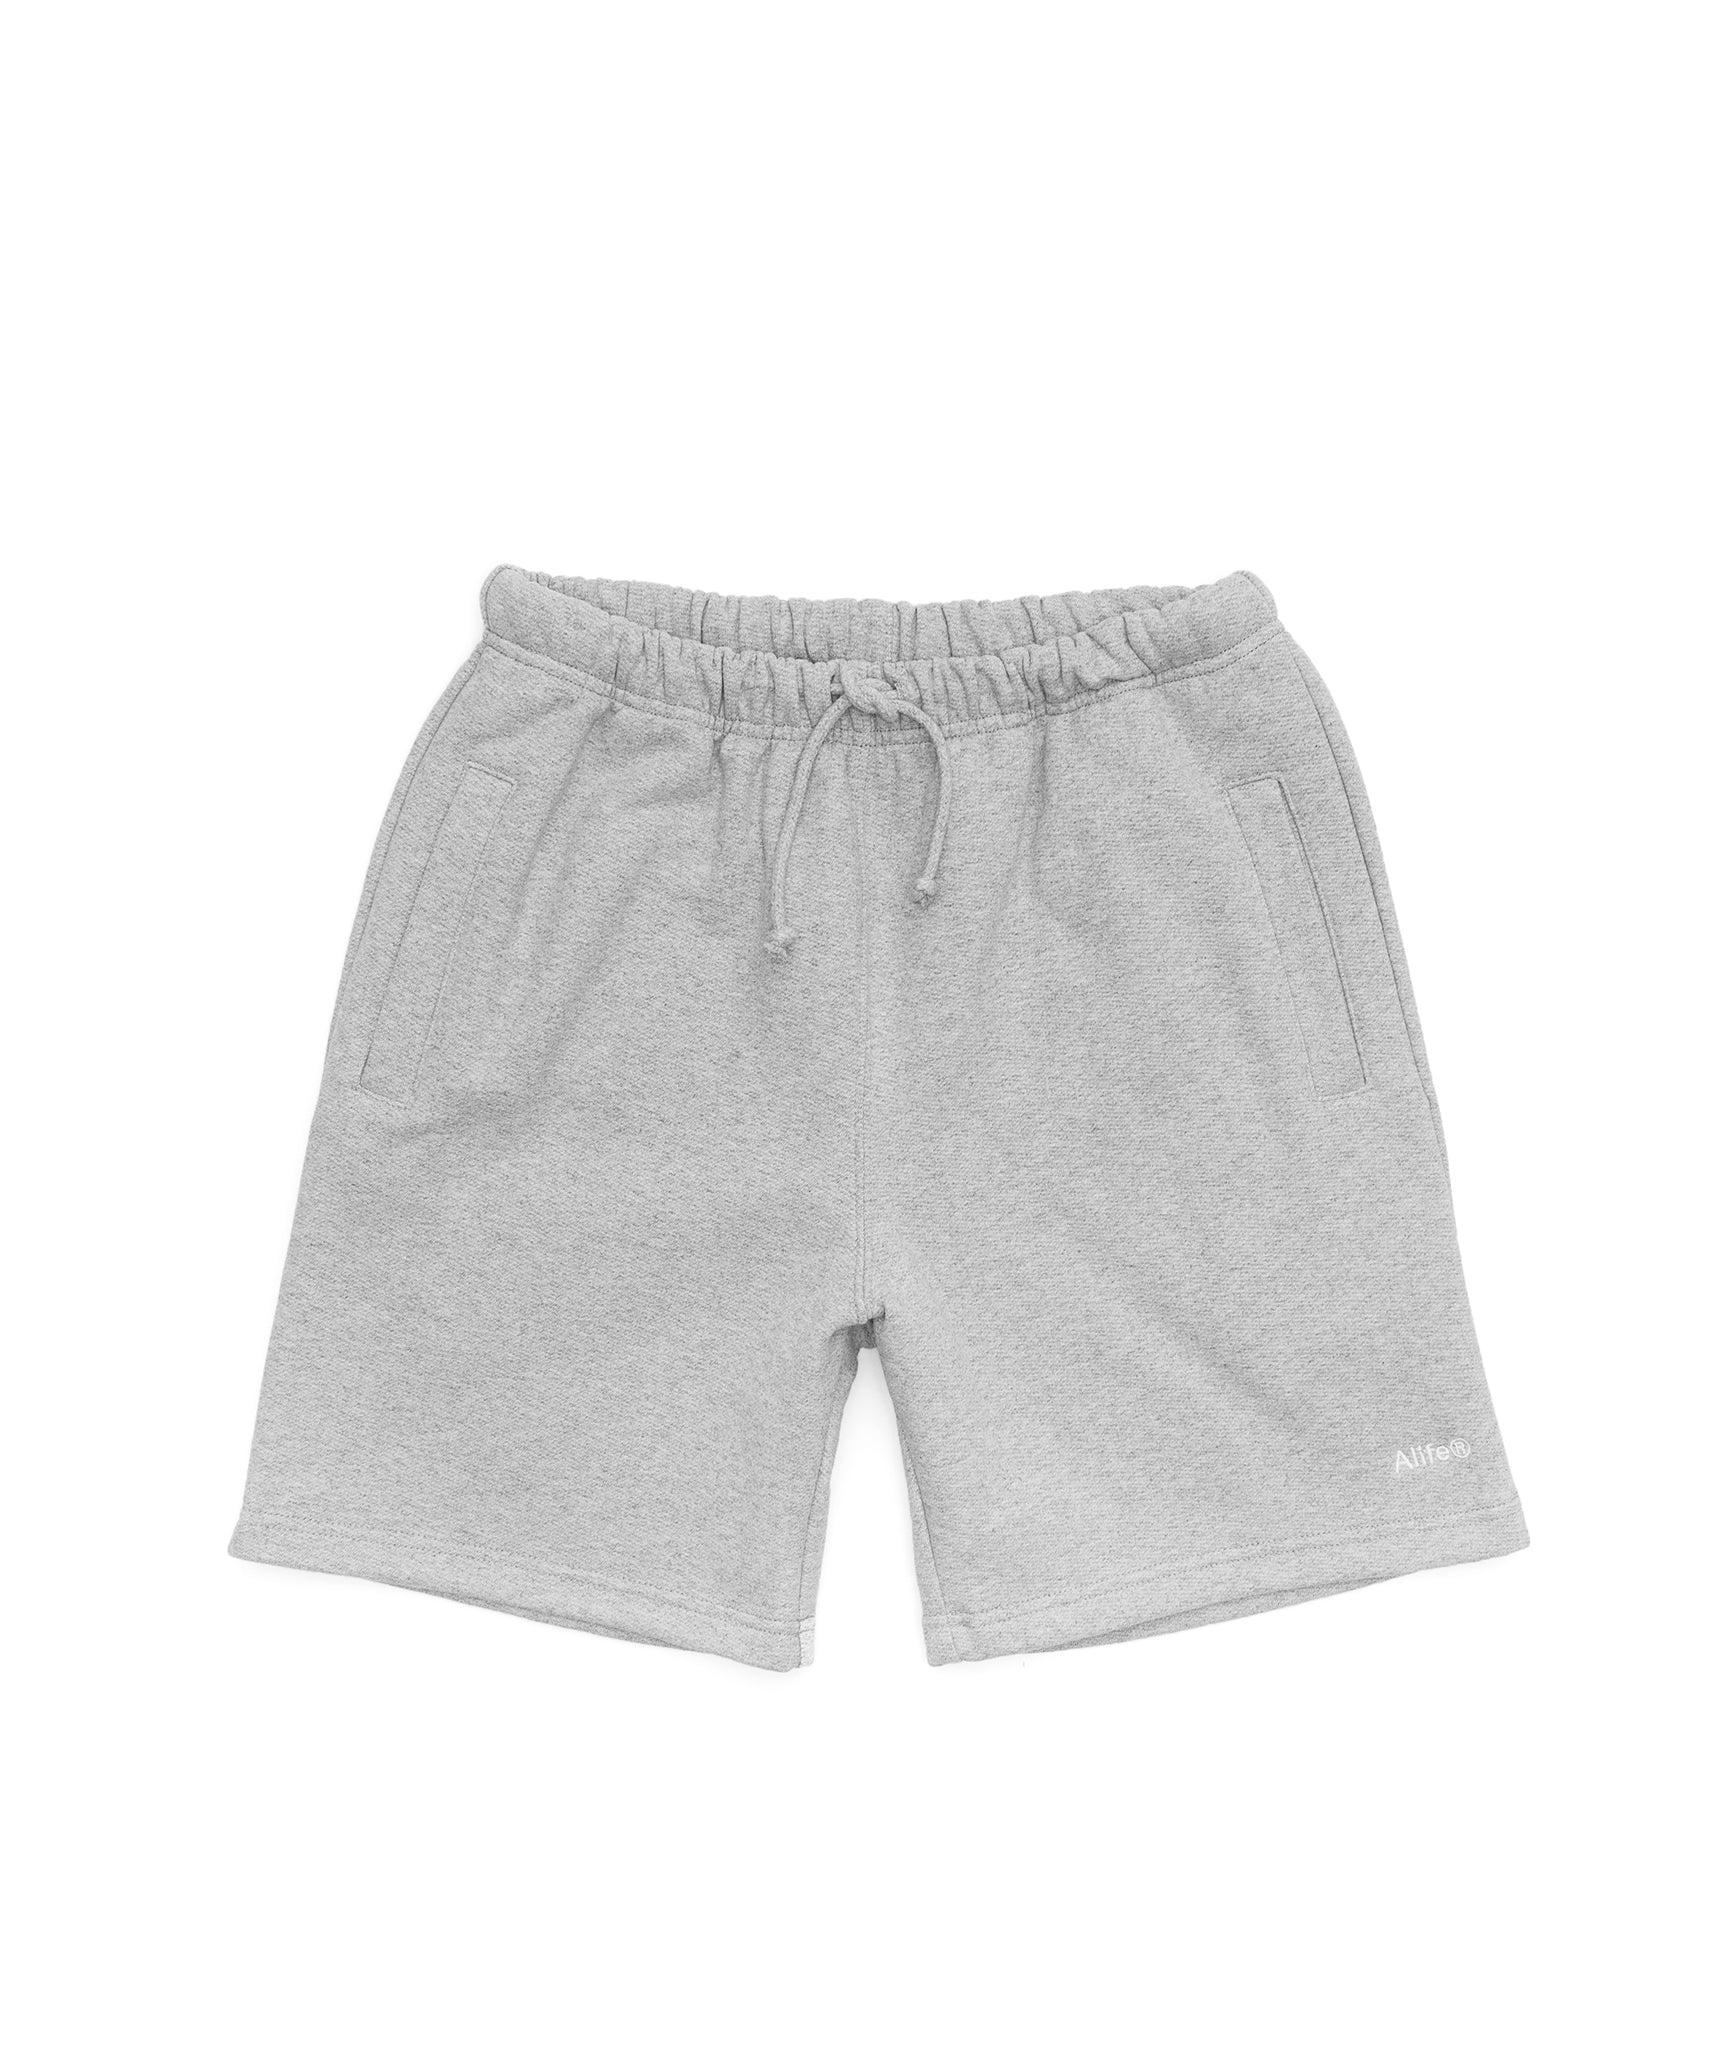 Alife Basics Fleece Short - Heather Grey